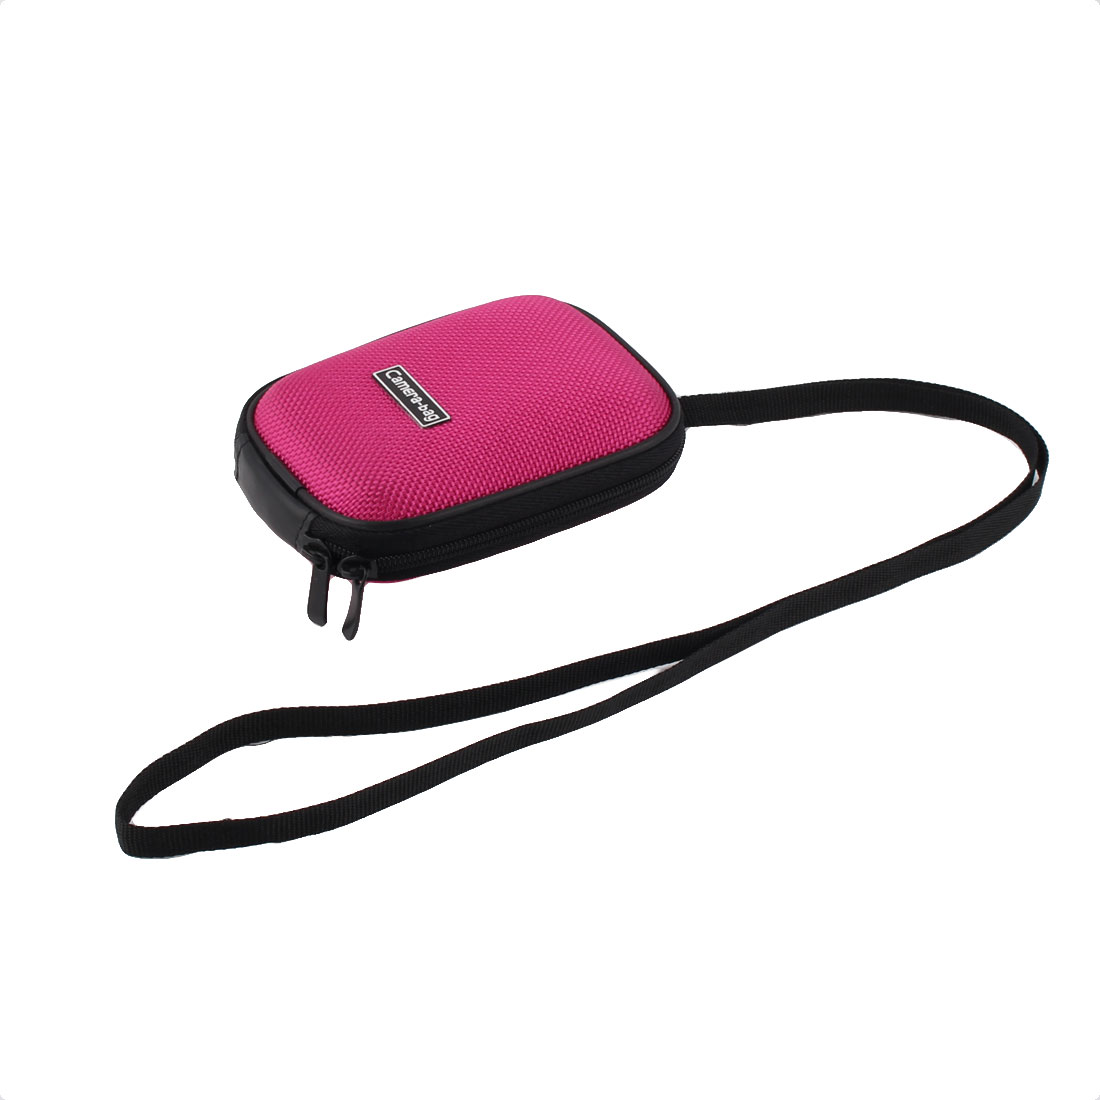 "Mini Zipper Closure Digital Camera Case Bag Pouch Protector Fuchsia 5"" Length"